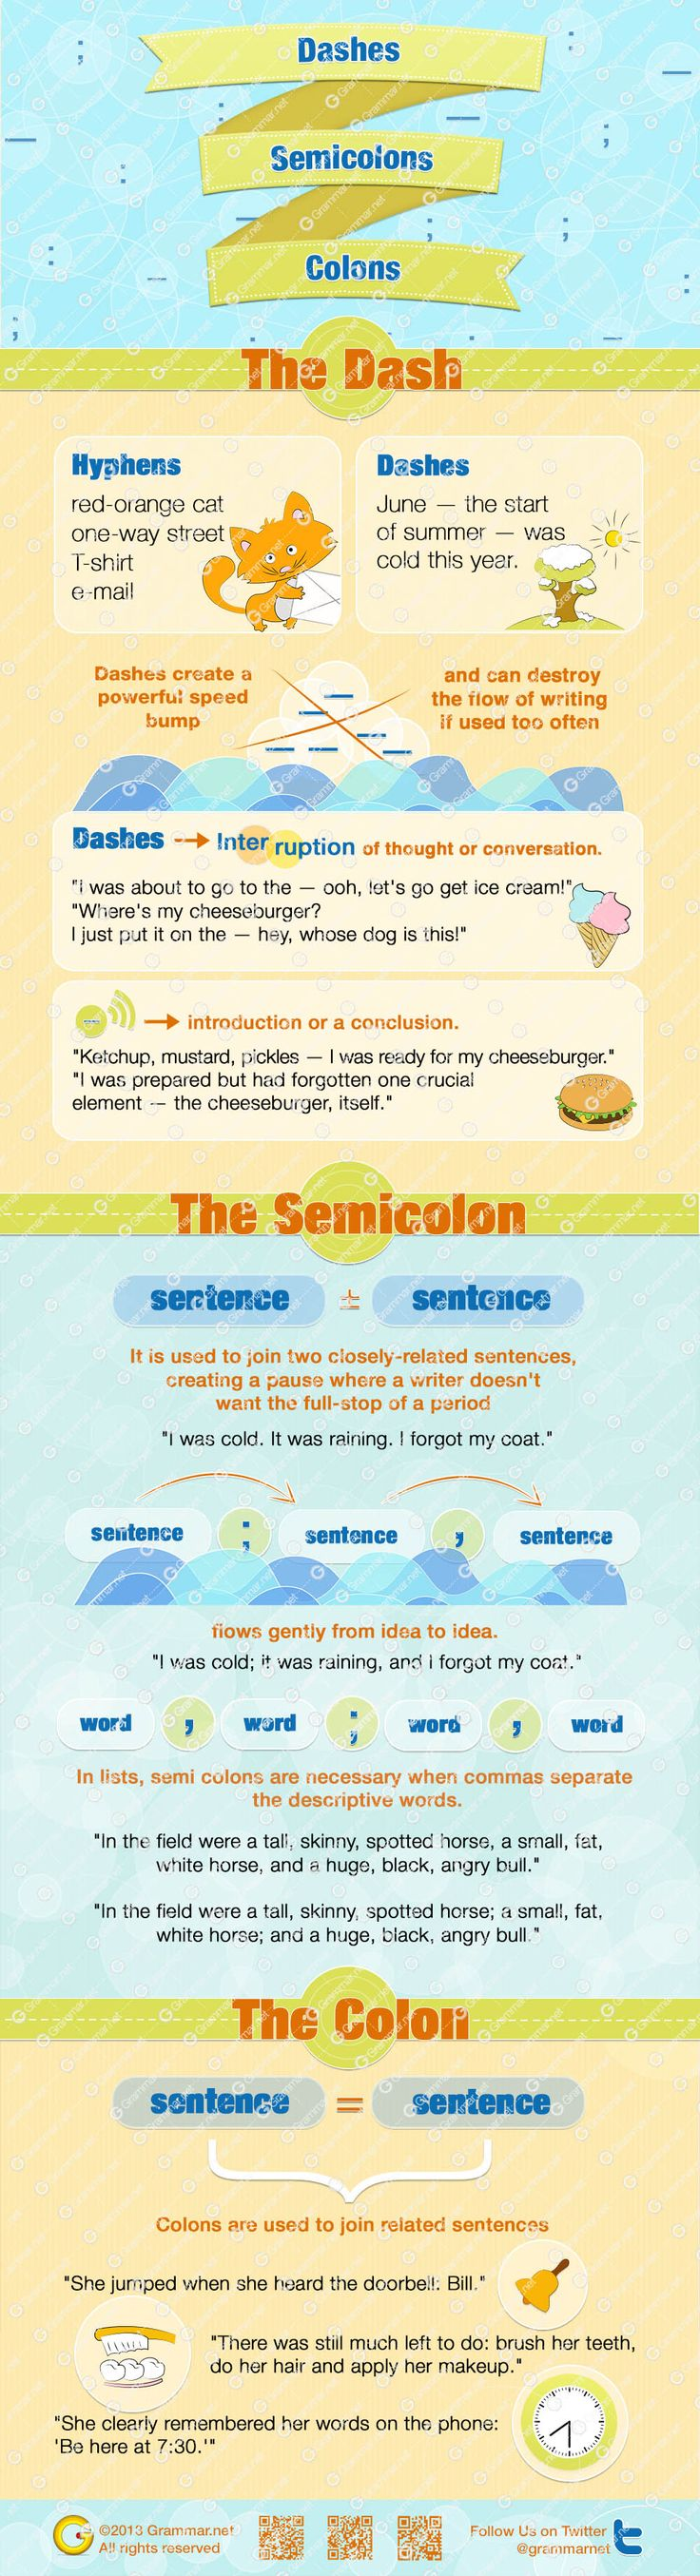 Dashes Semicolons and Colons in English - Punctuation